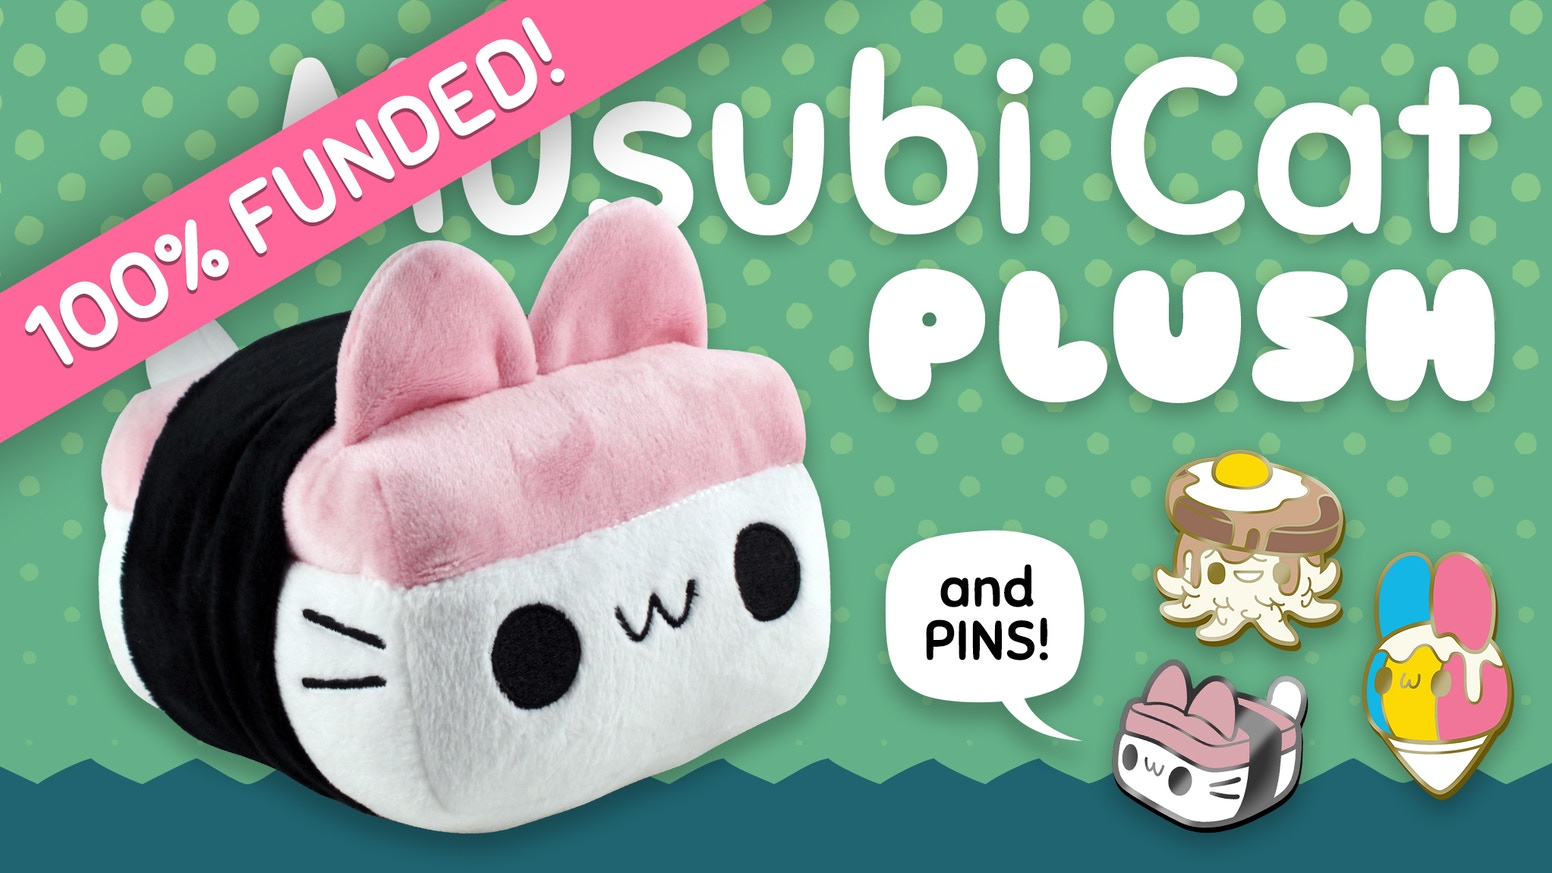 Introducing Pocket Sushi's first plush toy, the Musubi Cat, and a set of cute Hawaii food-inspired enamel pins!